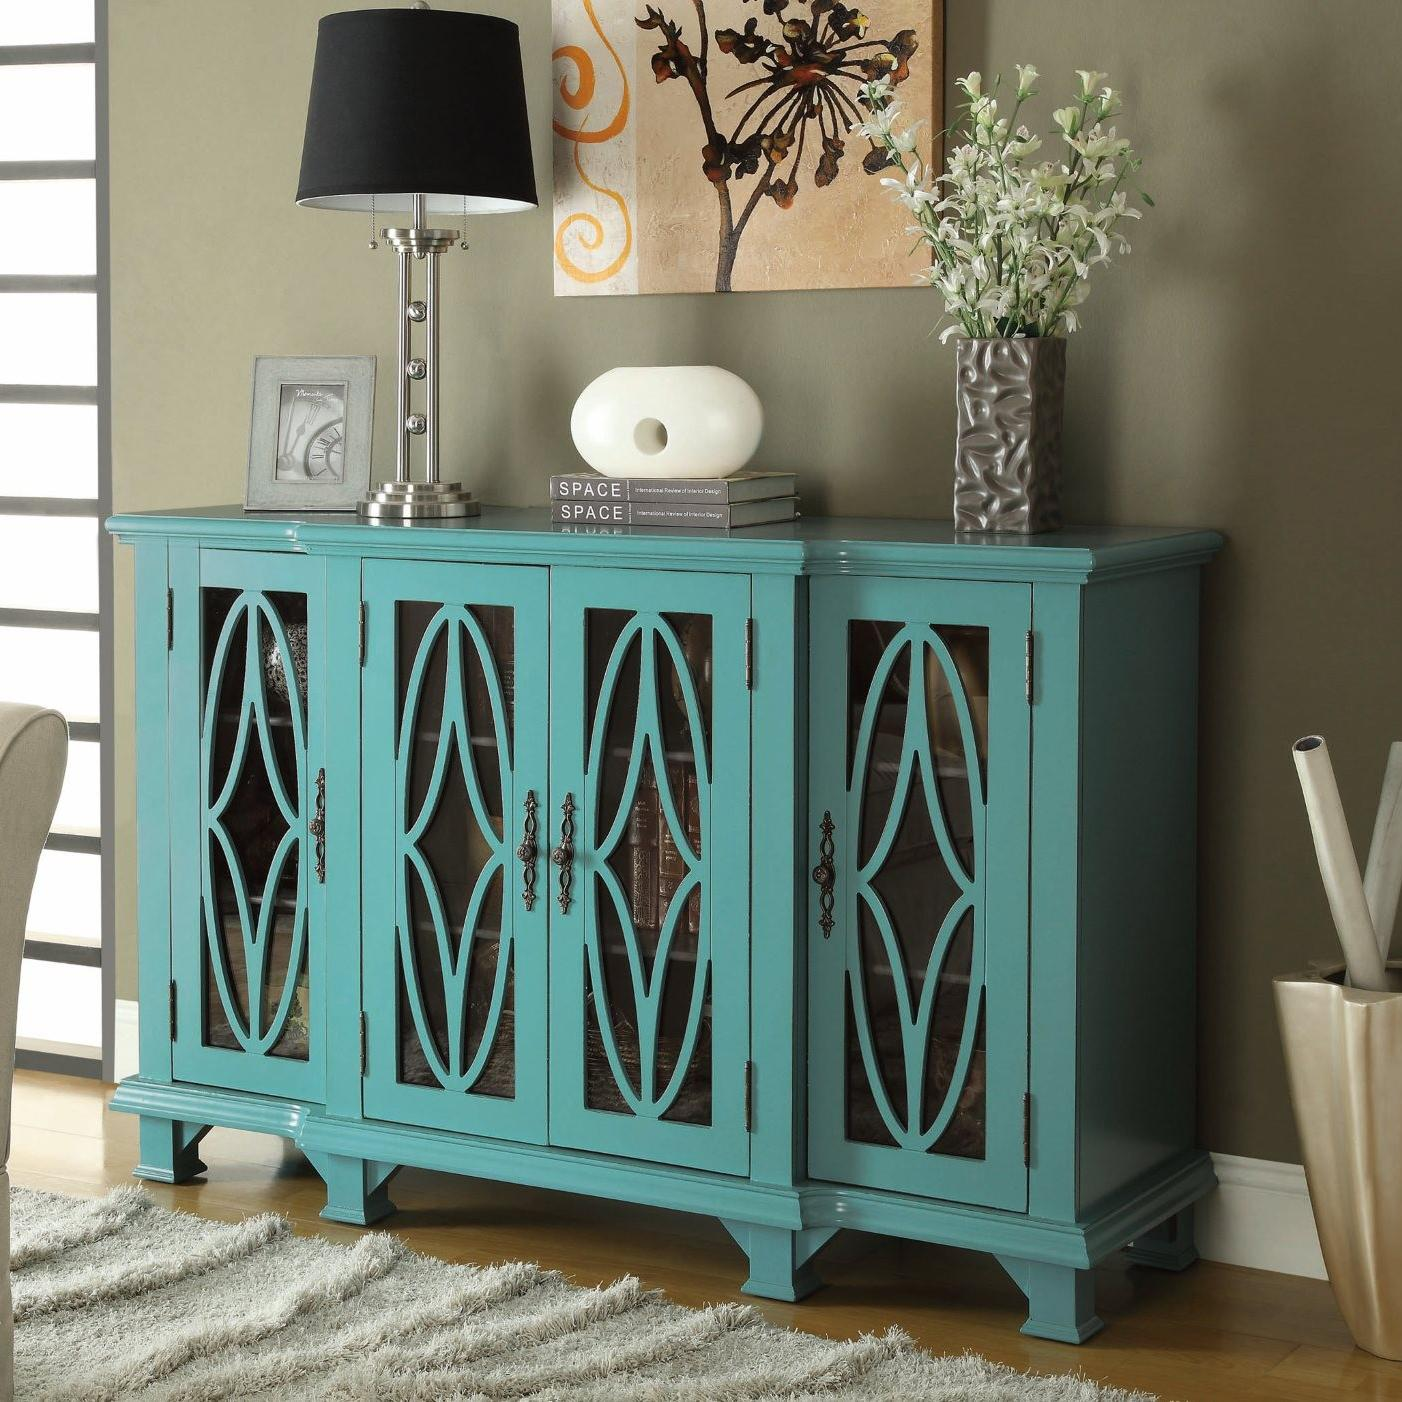 teal blue cabinet coco furniture gallery furnishing dreams aqua accent table printed chairs lamps art deco lighting oval outdoor room essentials chair mirrored console bright